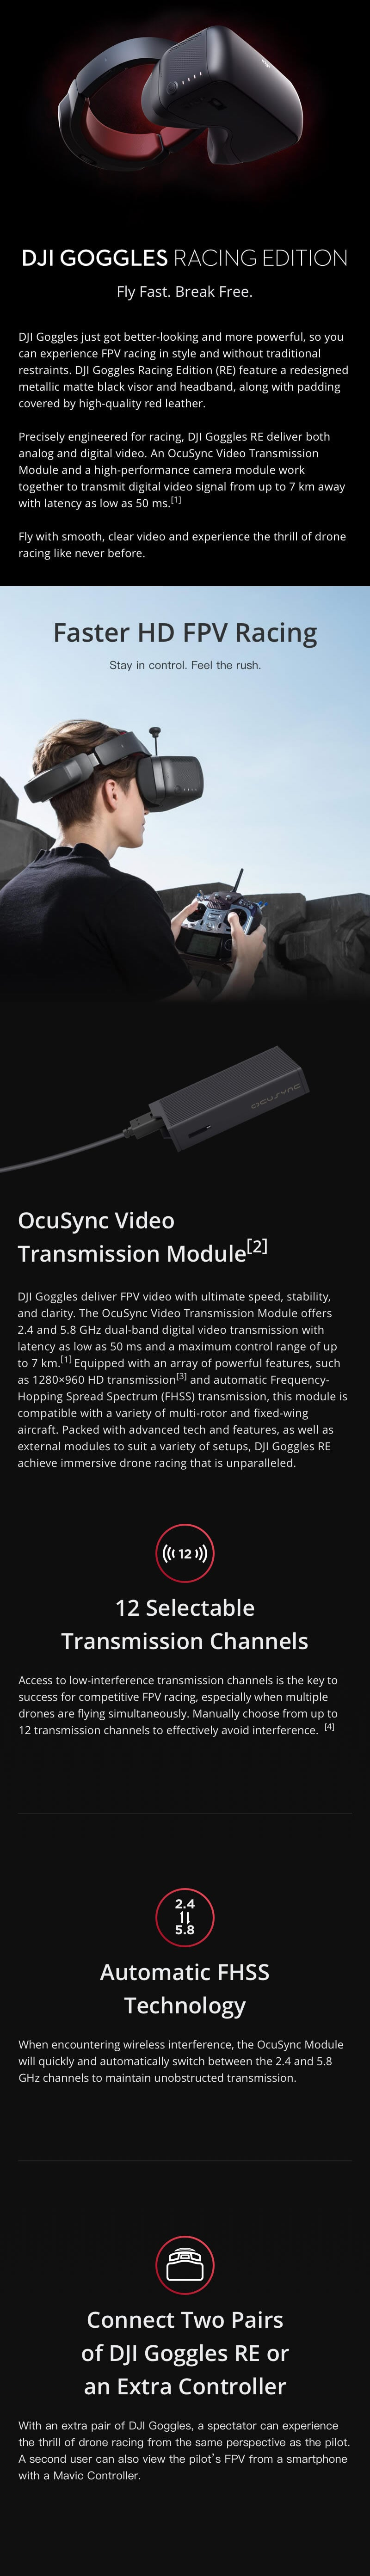 dji-re-goggles-description-1